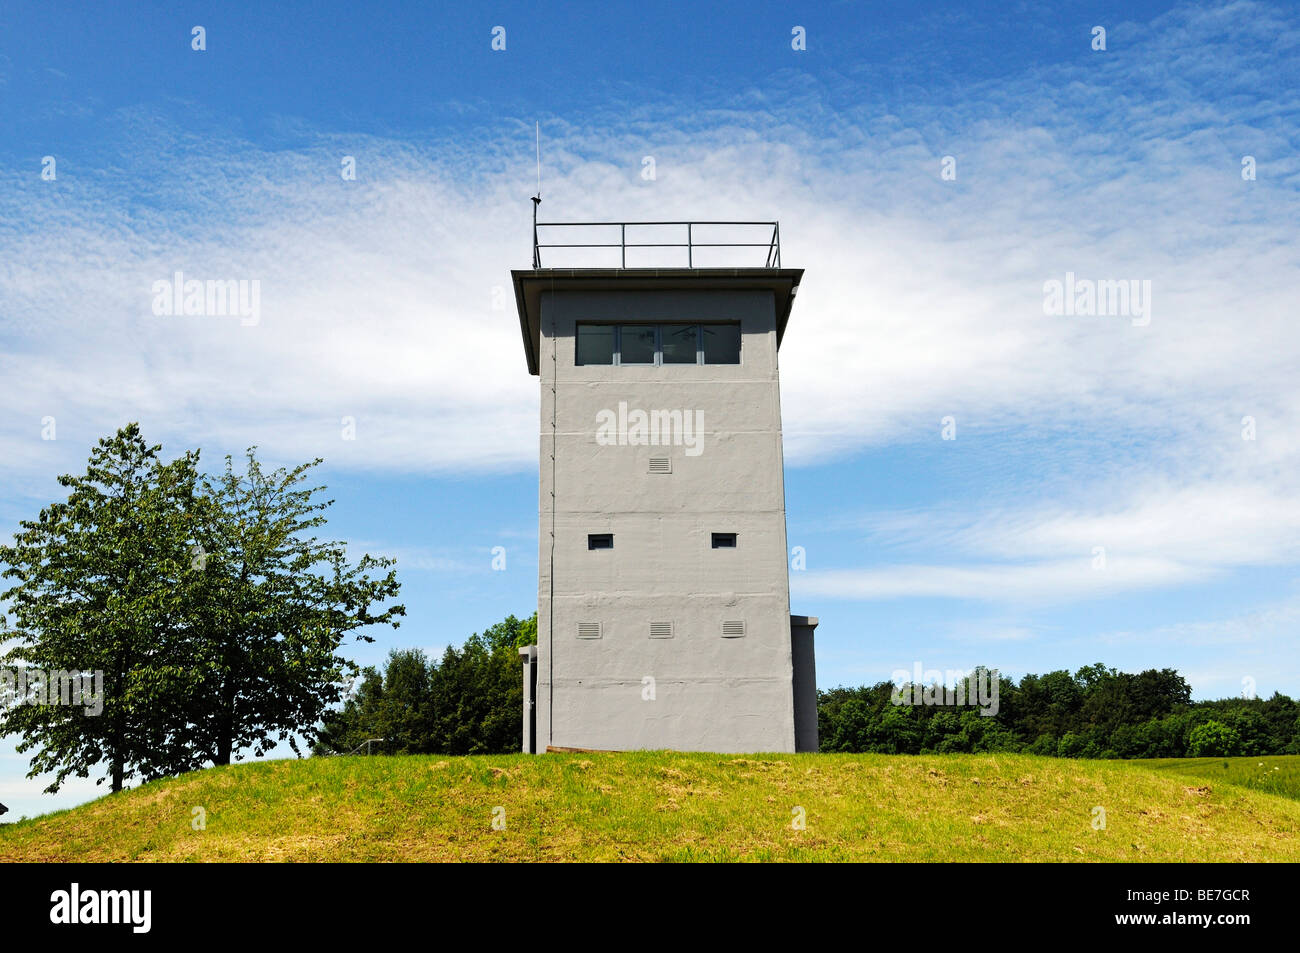 Museum and memorial in the border tower Katharinenberg at the former inner-German border, Thuringia, Germany, Europe - Stock Image